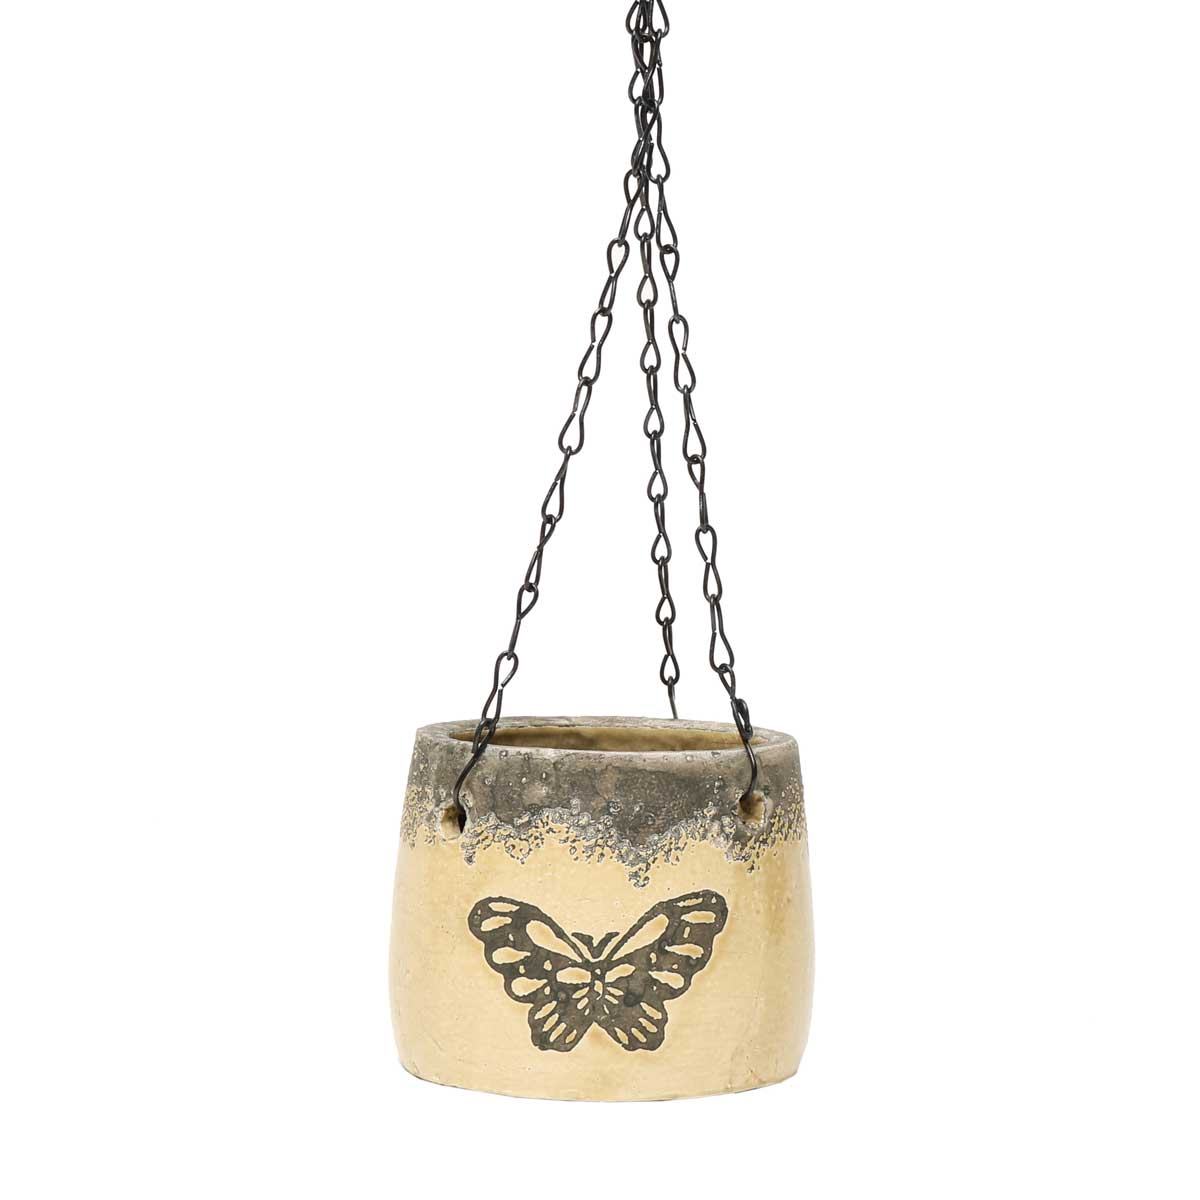 "Butterfly Hanging Pot 4""x4"" A2071 BT v22"